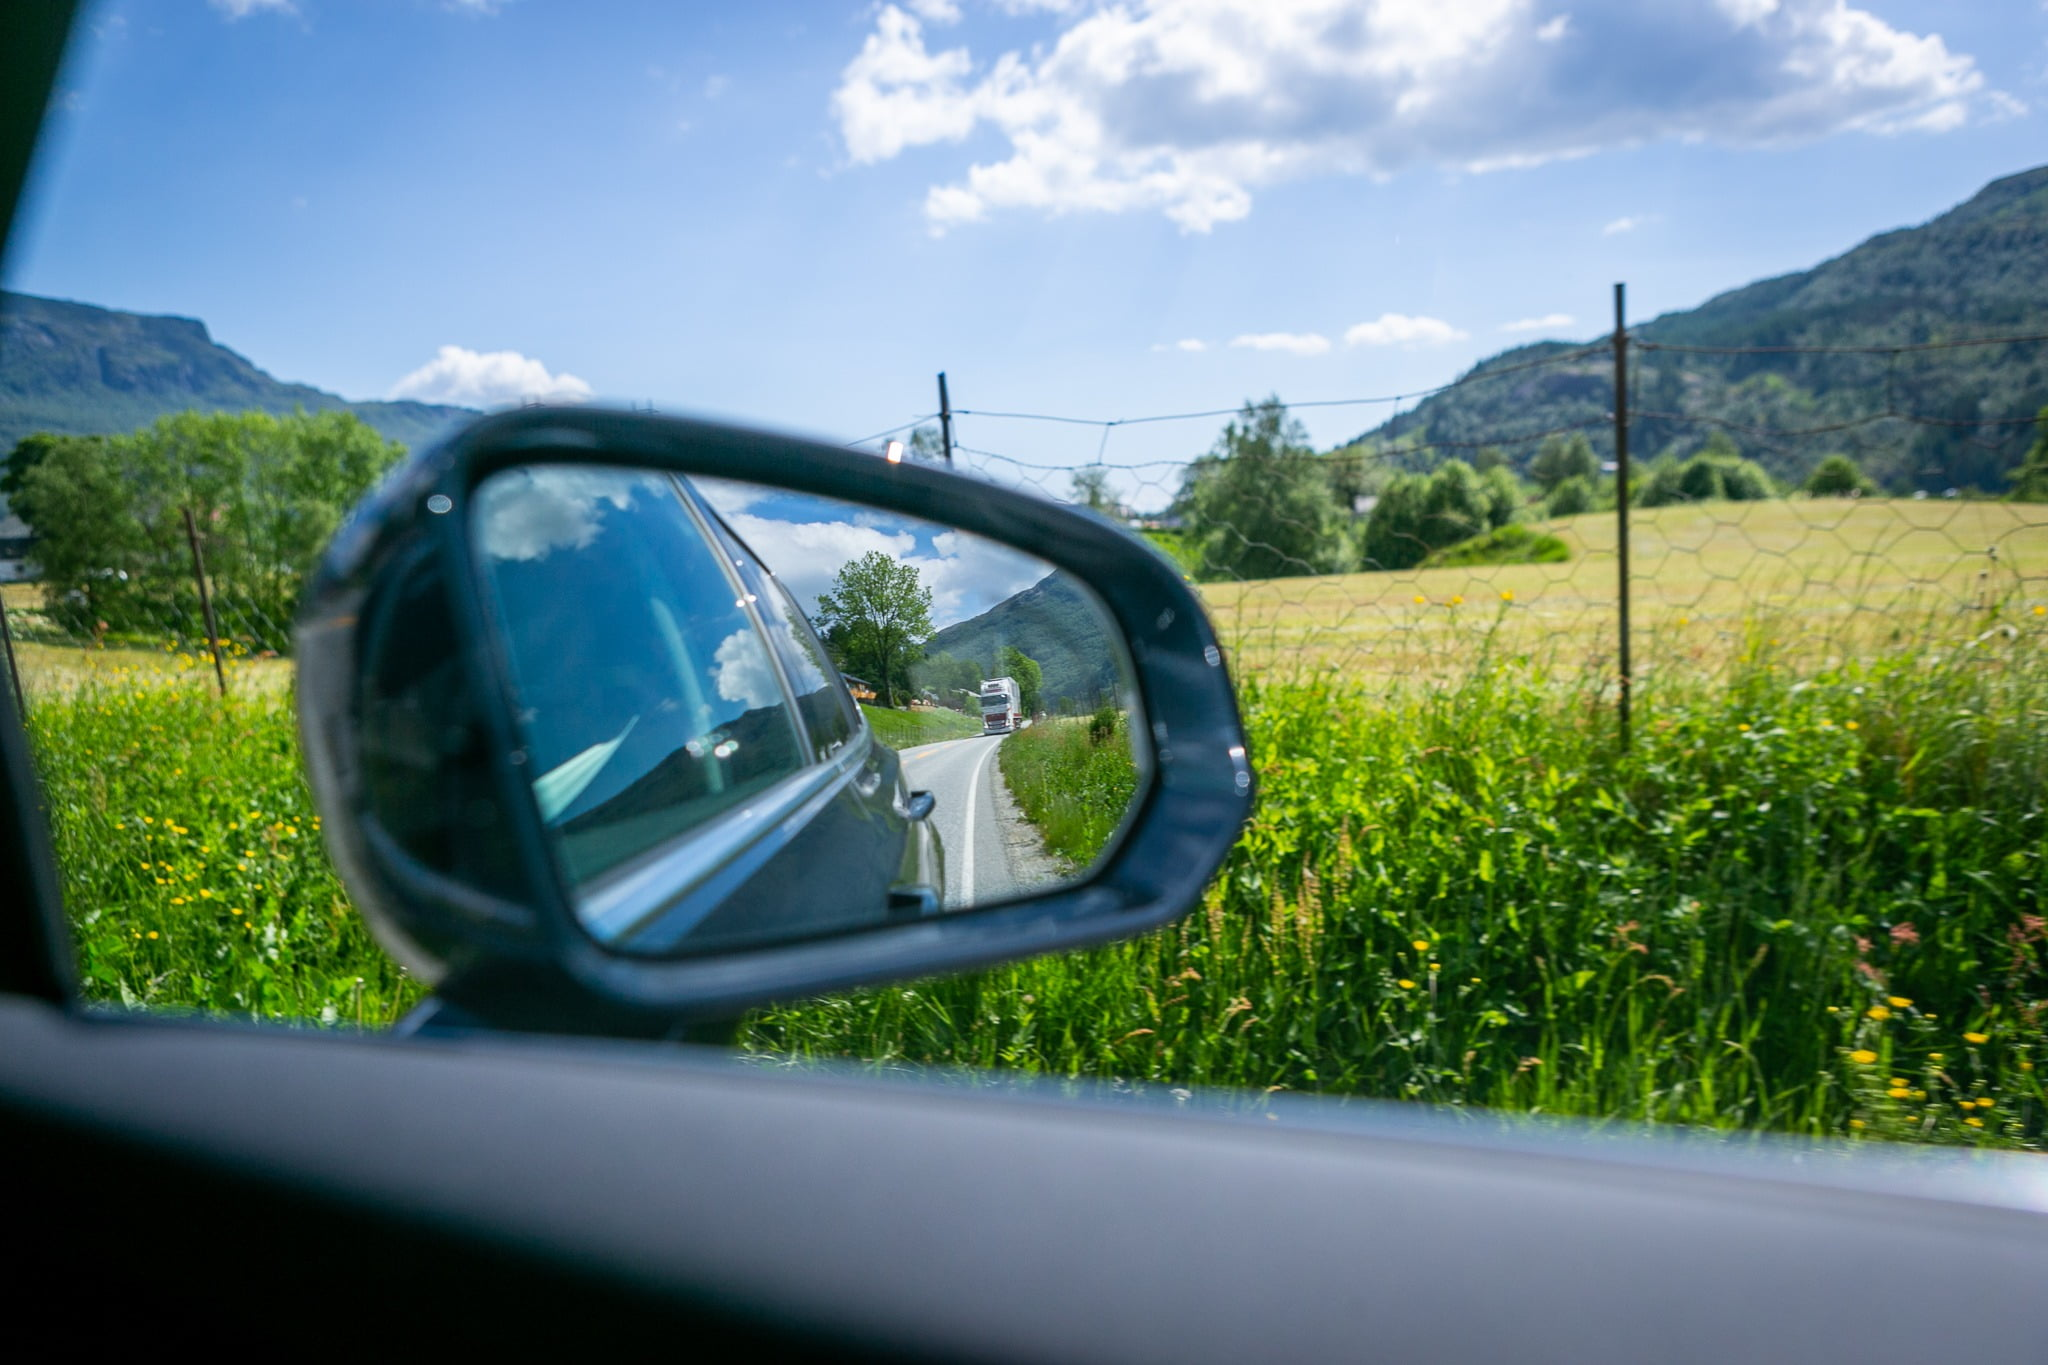 Automotive side-view mirror, Motor vehicle, Cloud, Sky, Plant, Car, Green